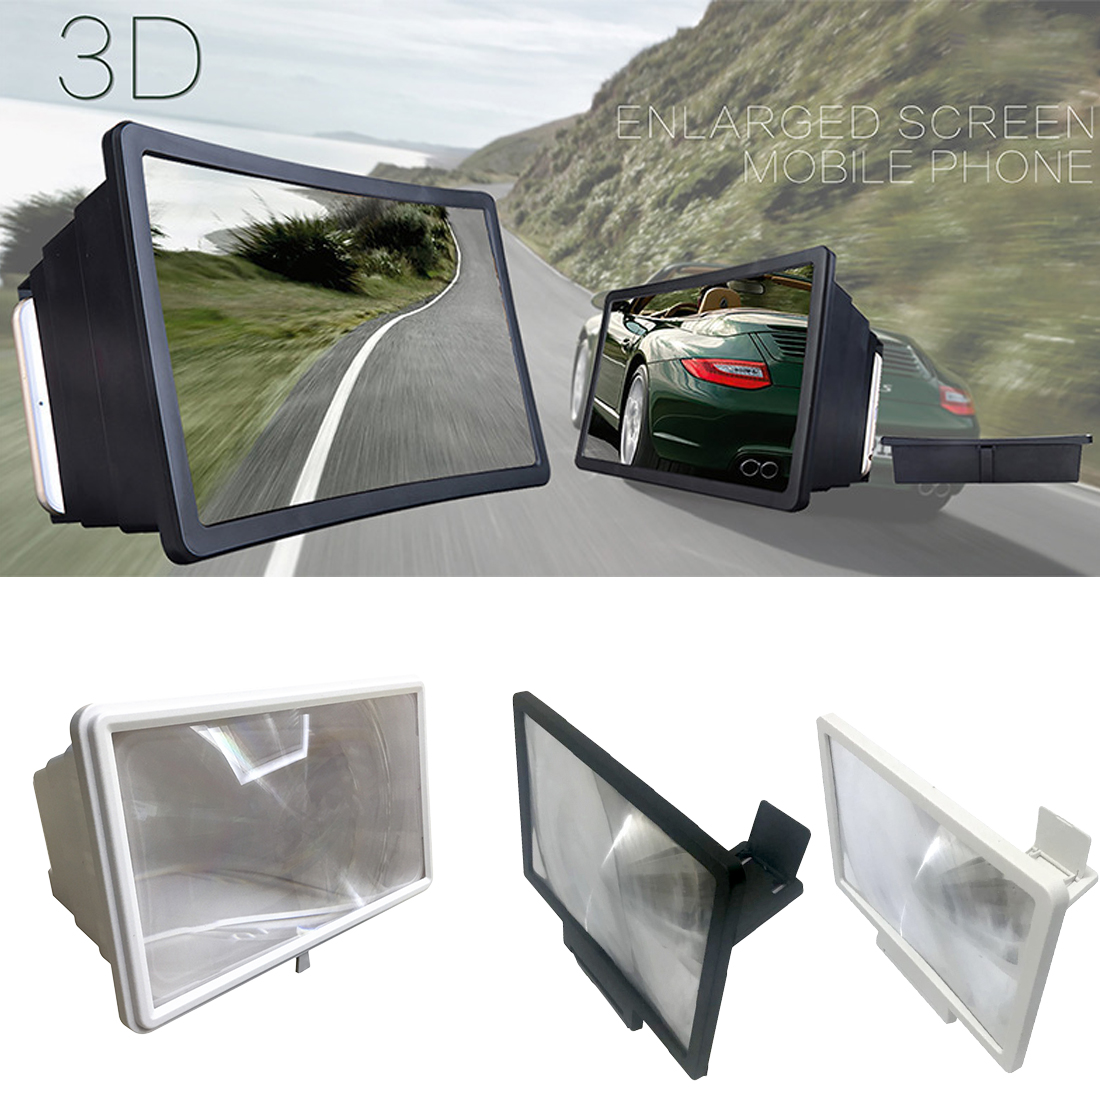 Generous 3D HD Movie Video Amplifier Cell Phone Screen Magnifier With Foldable Holder Stand image